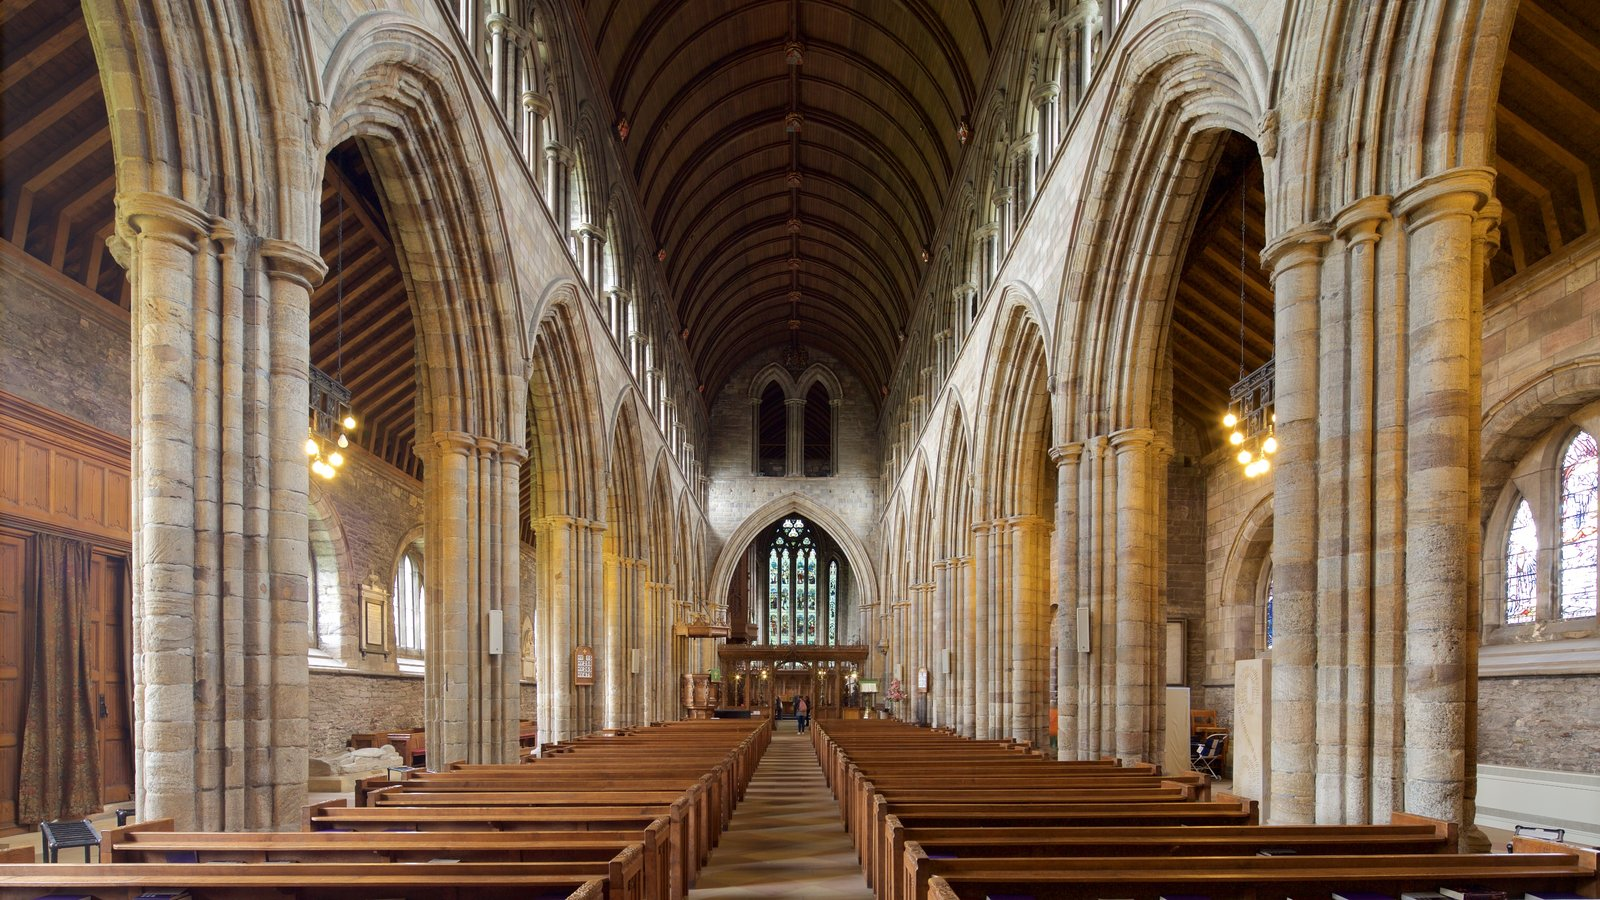 Dunblane Cathedral featuring a church or cathedral, interior views and religious elements